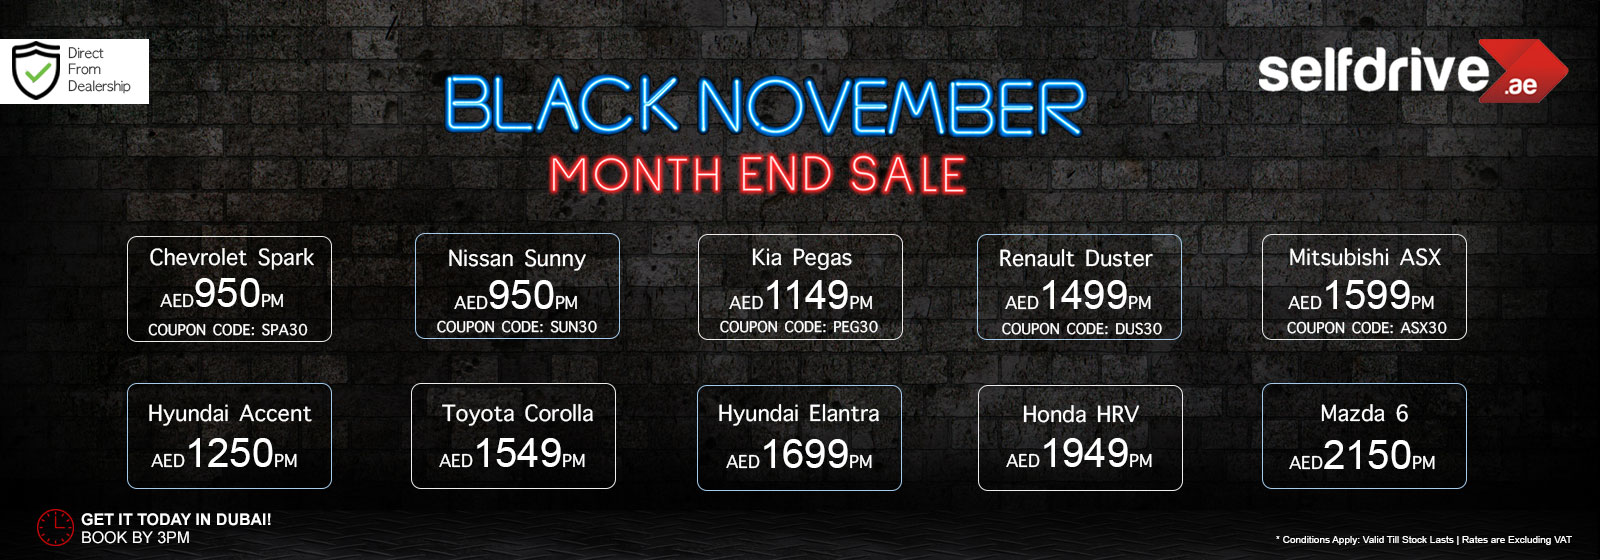 Black November Month End Sale